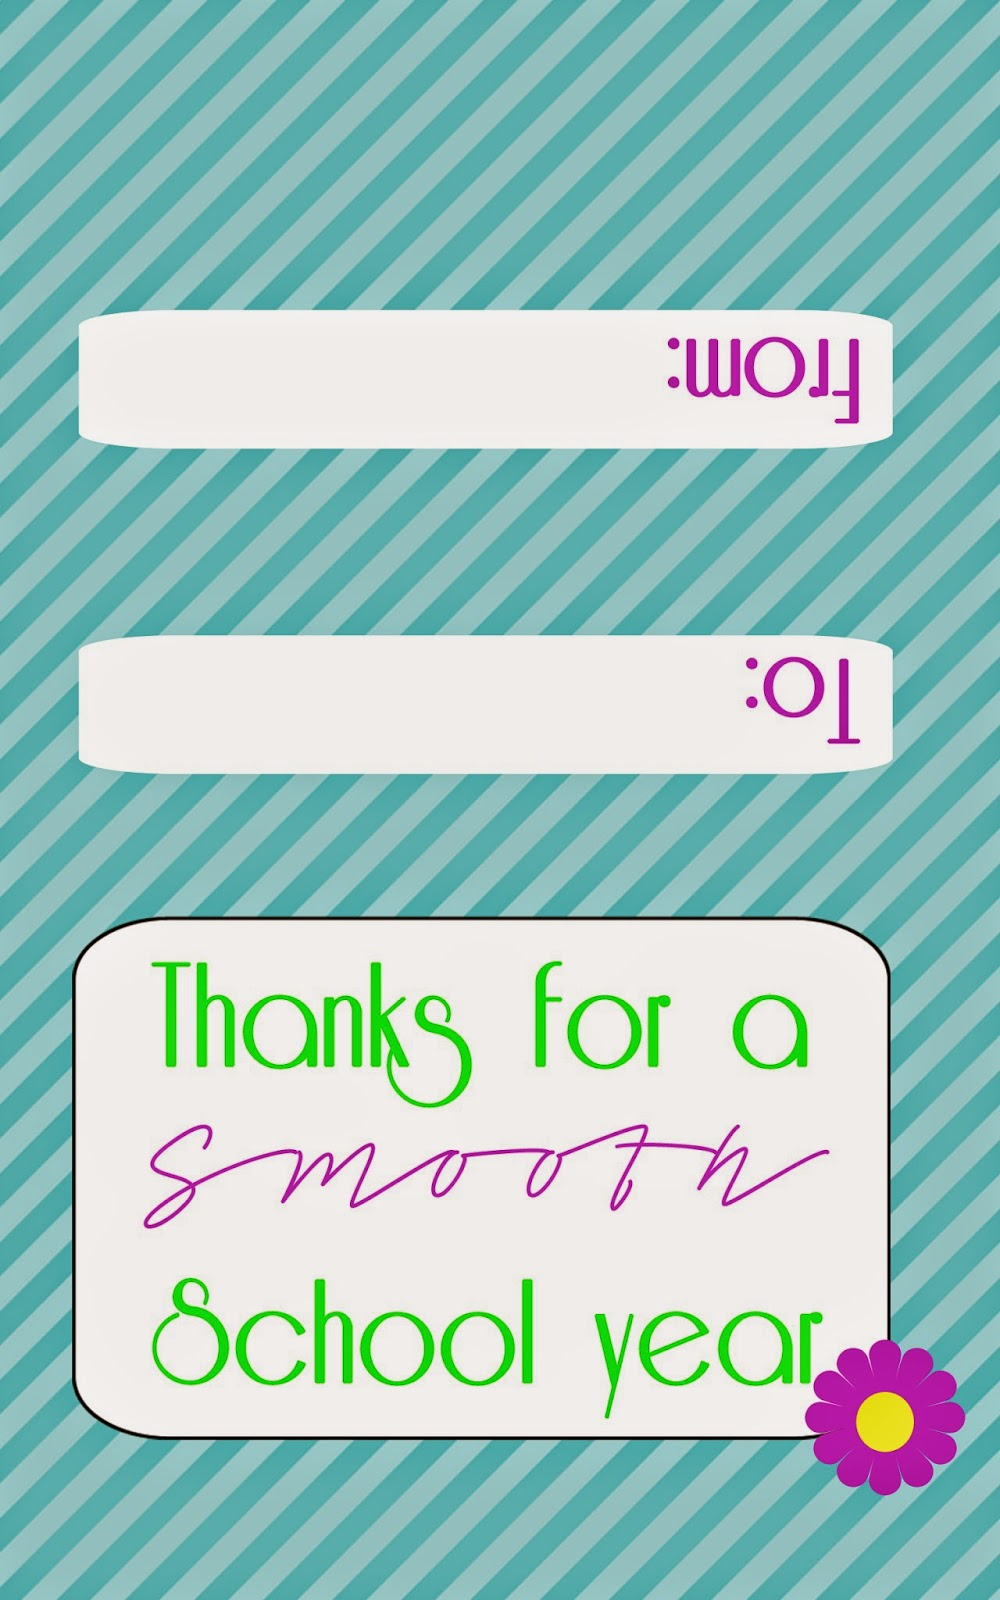 free smoothie gift card printable for teachers www.freetimefrolics.com #printable #teacher